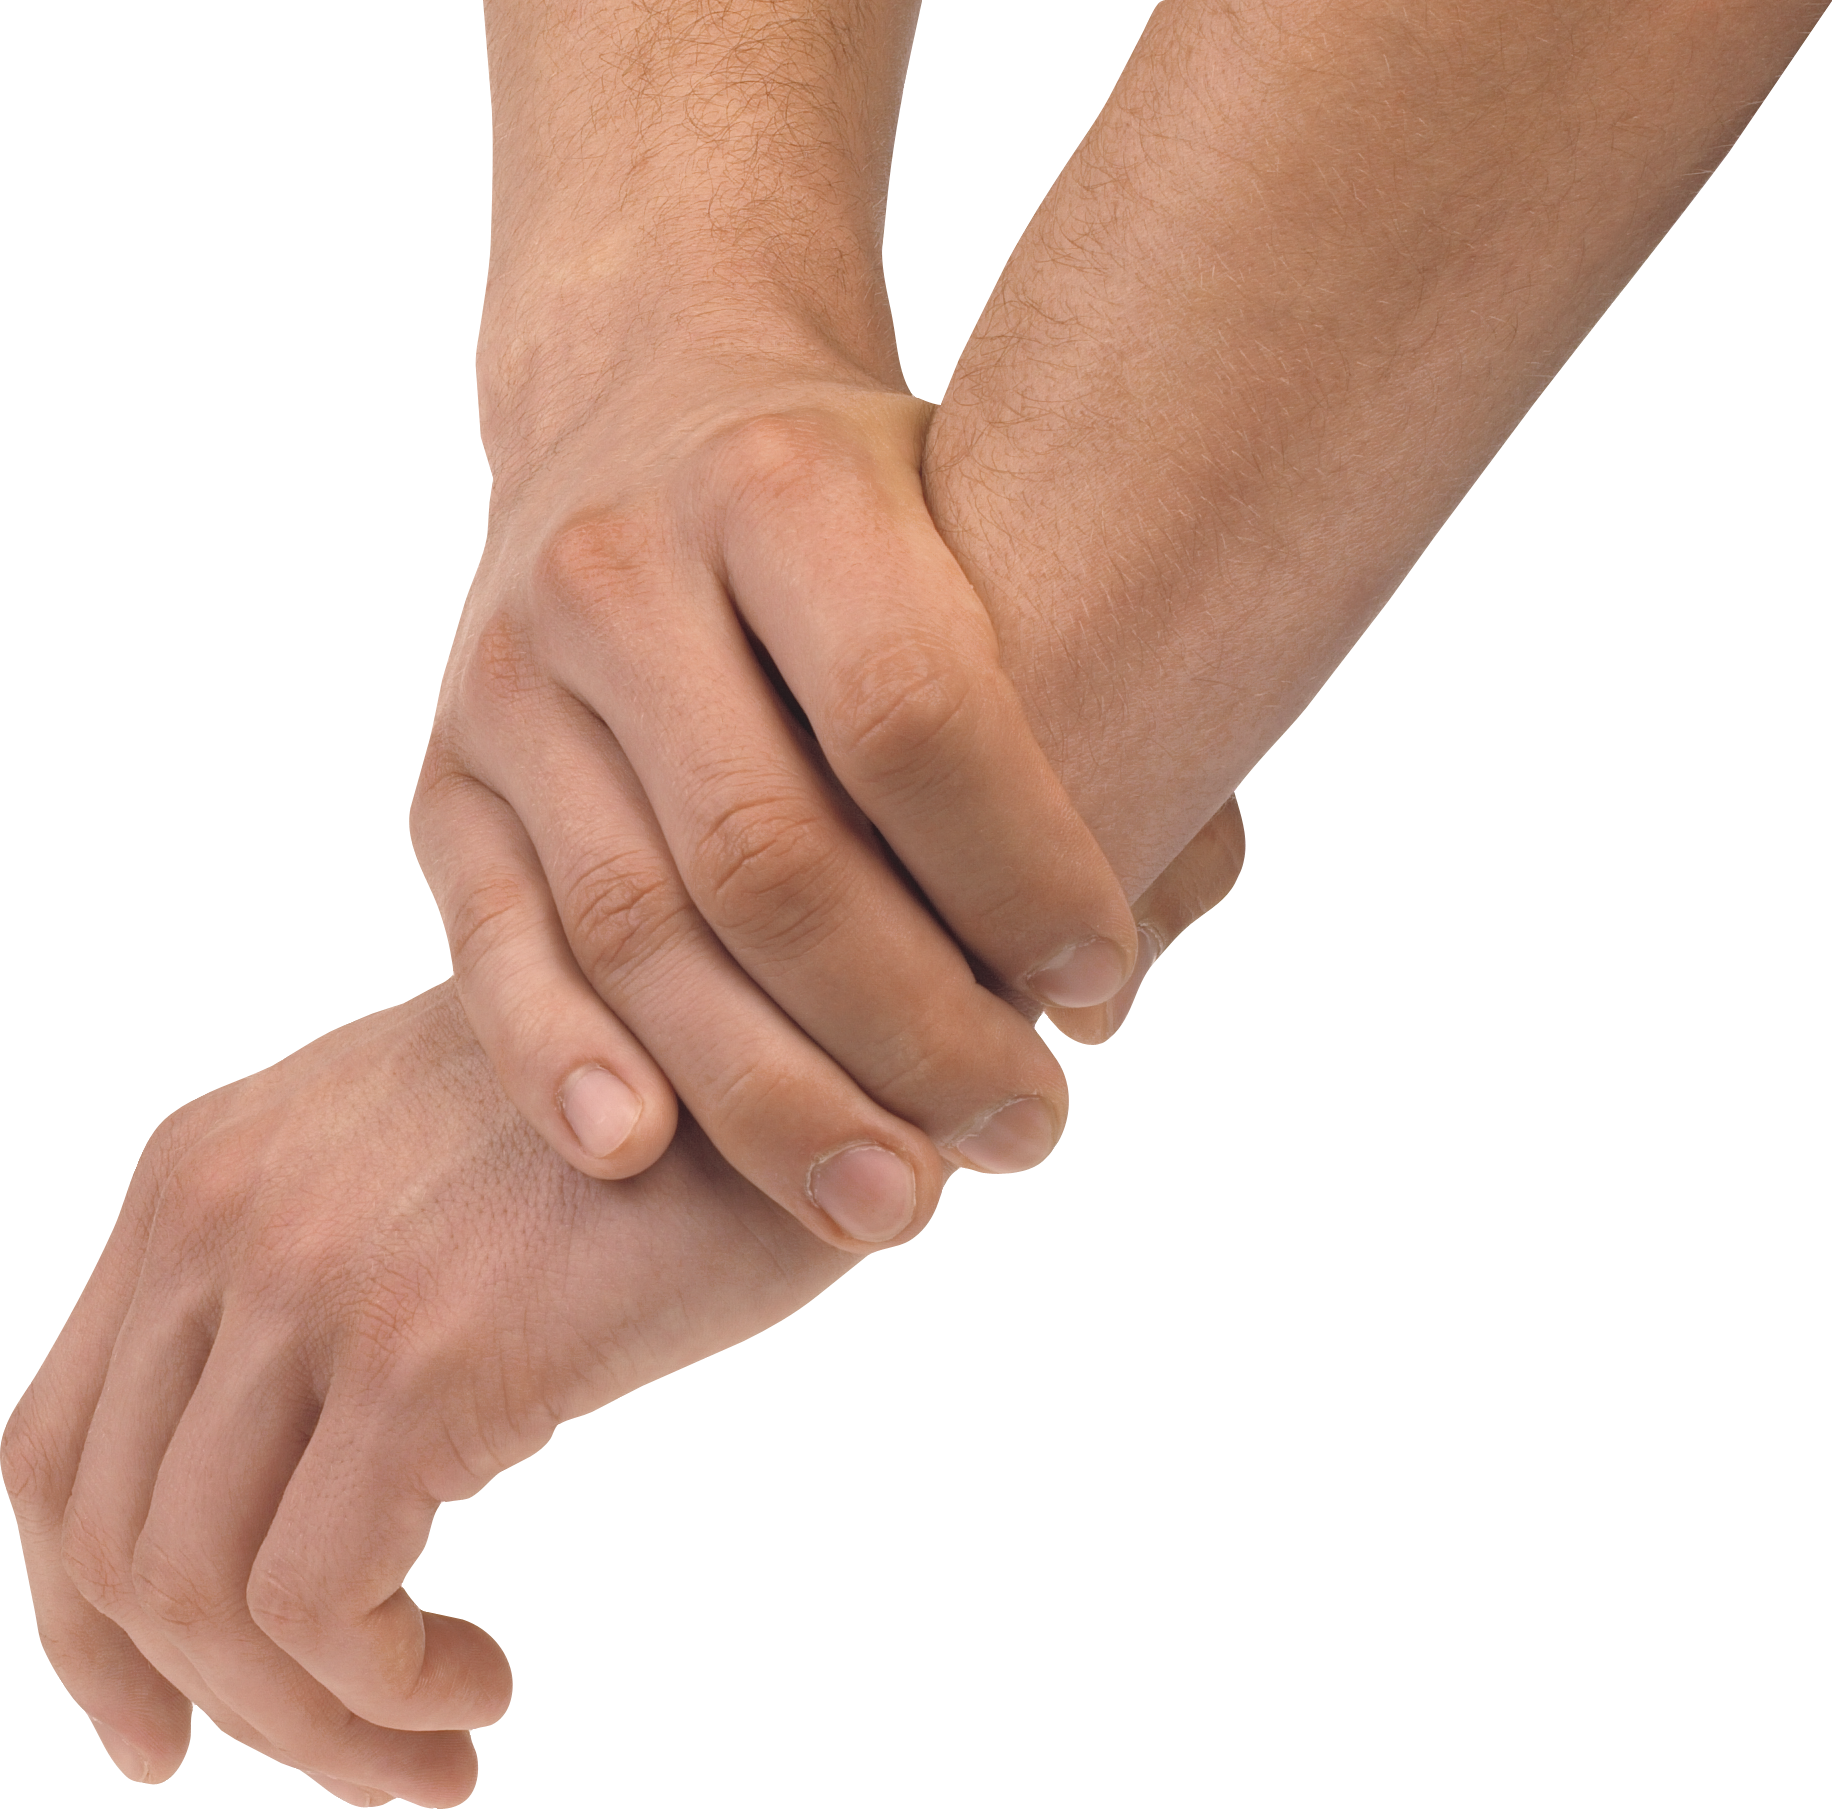 Hands PNG, hand image free - Cuffed Hands PNG